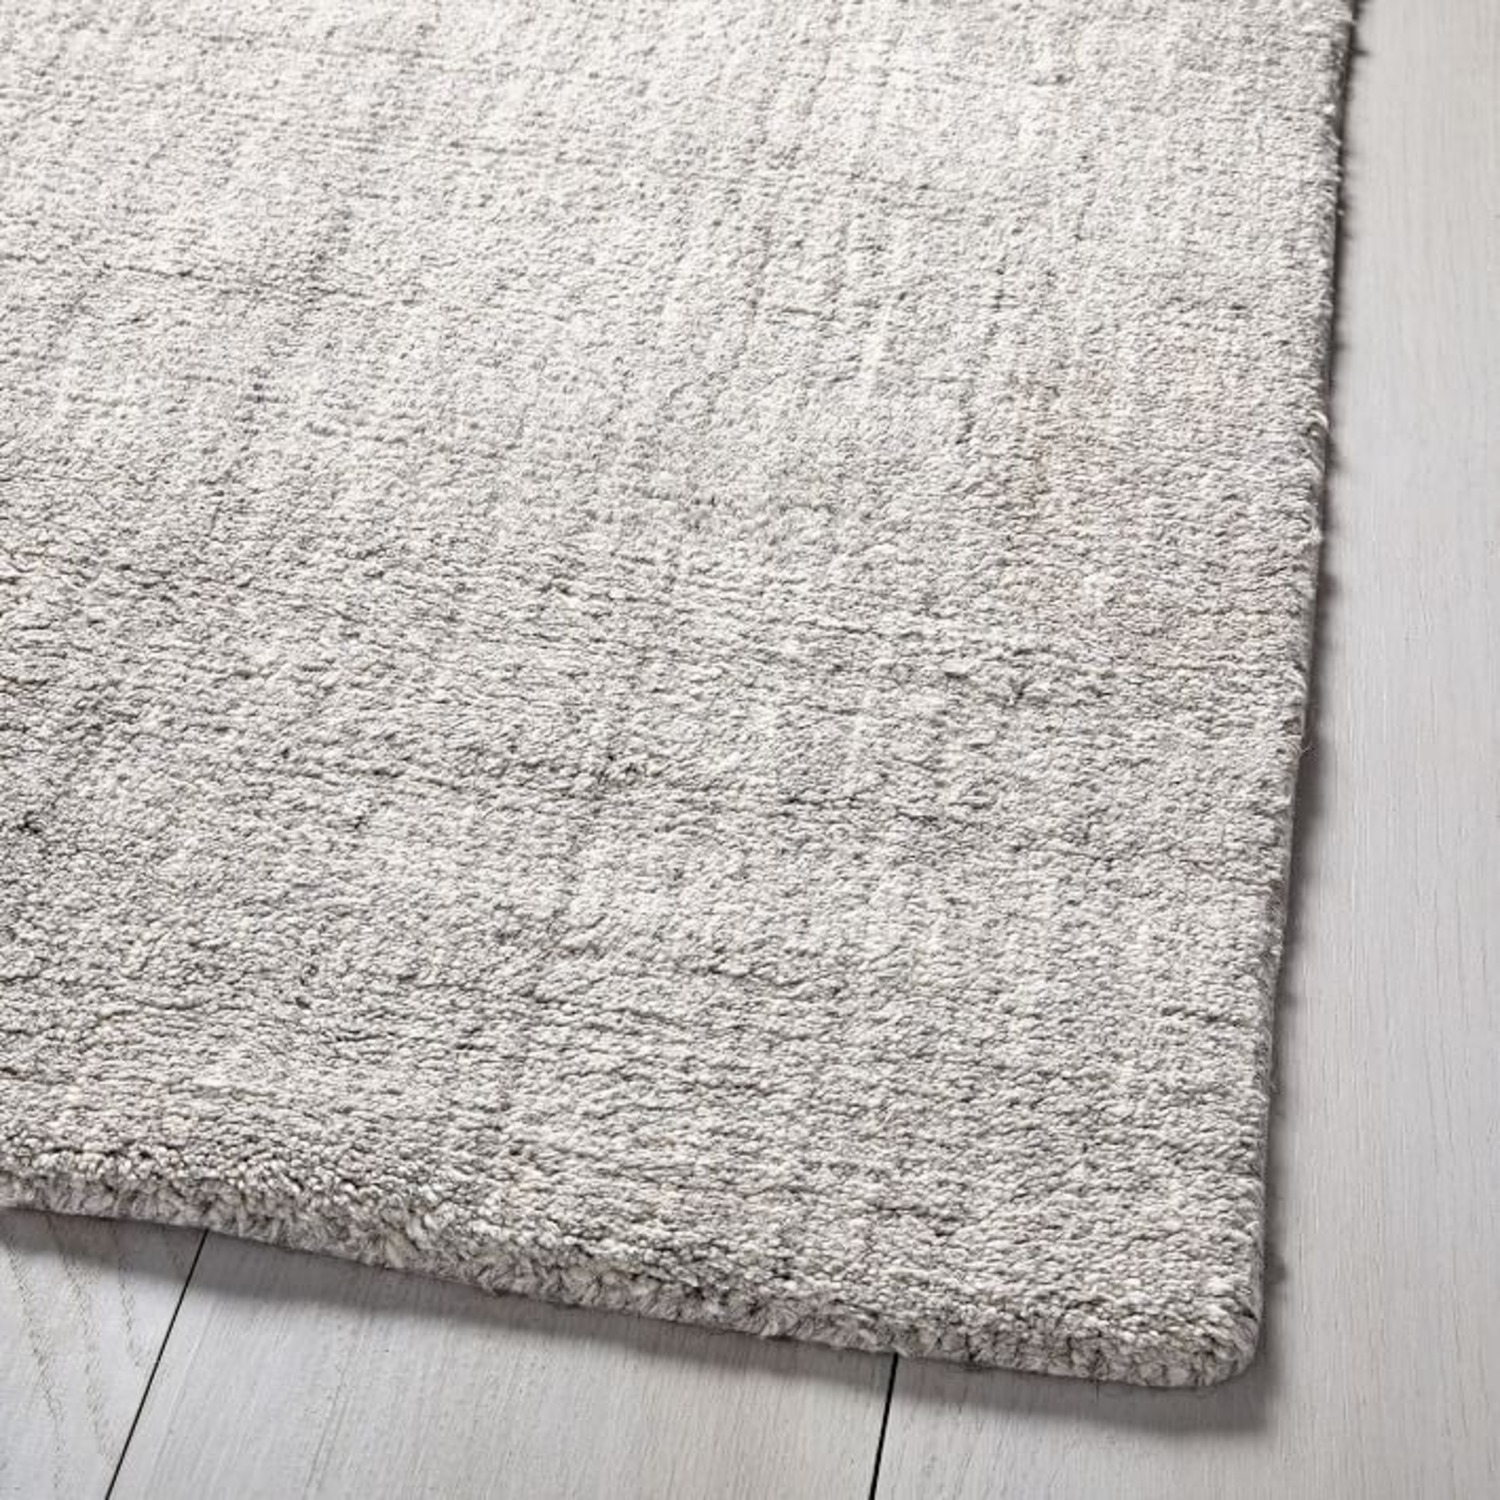 West Elm Handloomed Strie Shine Rug - image-2